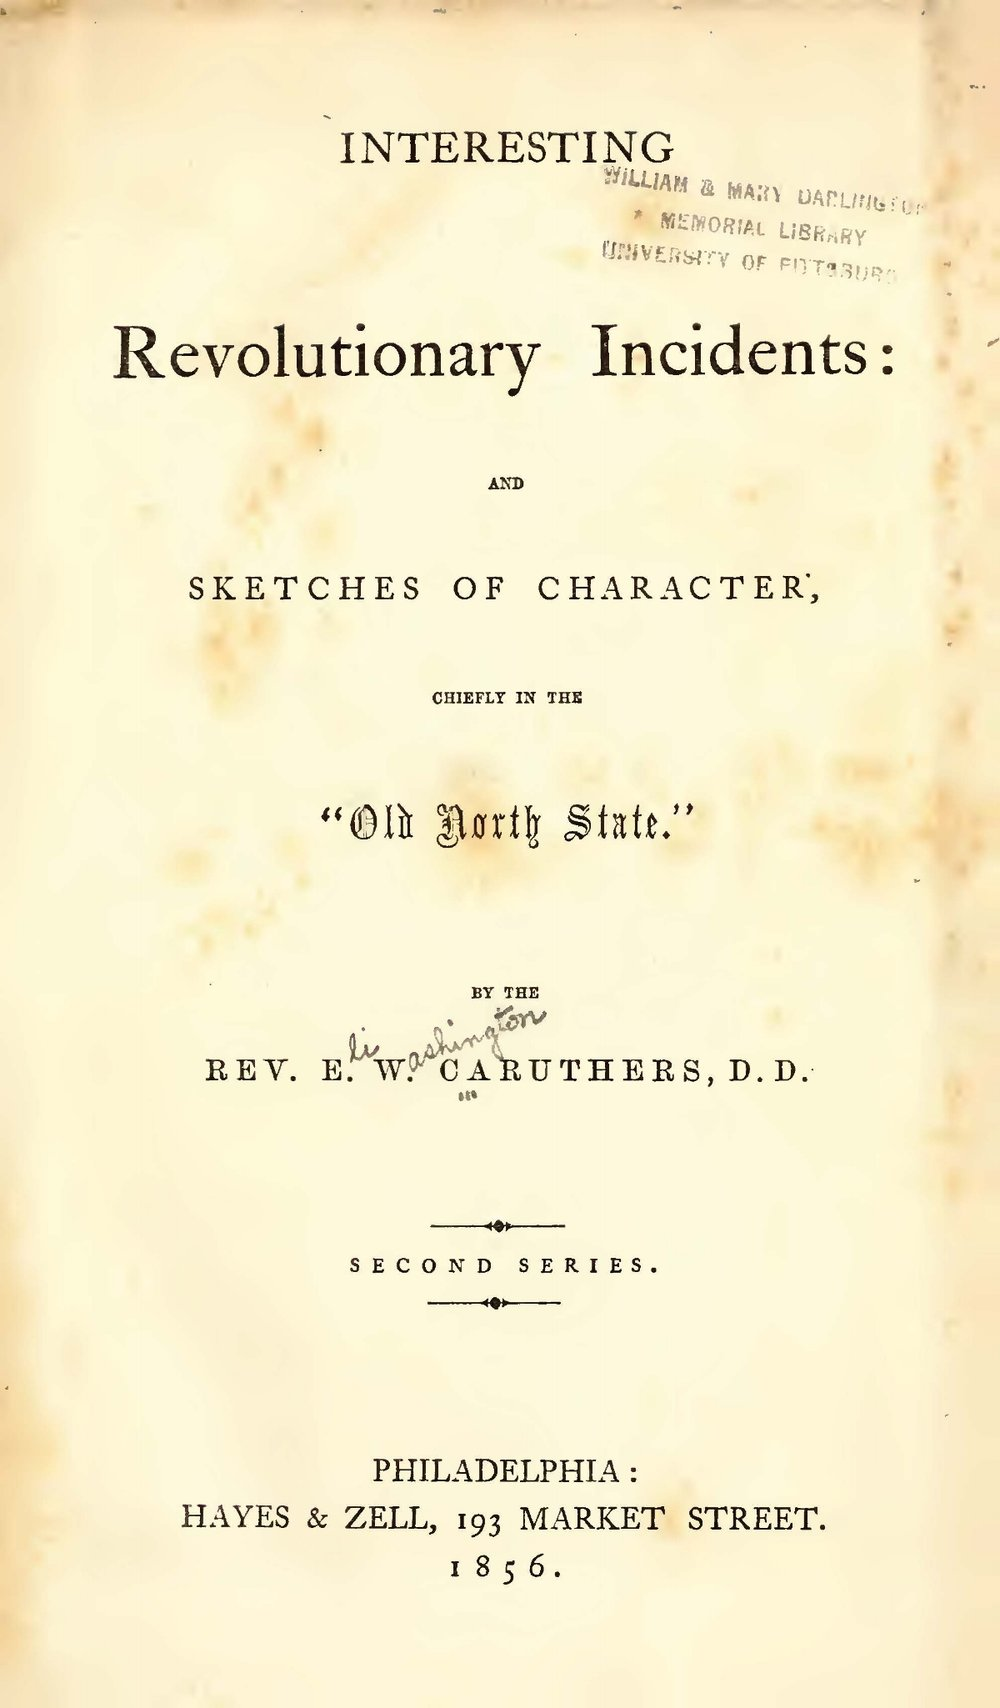 Caruthers, Eli Washington, Interesting Revolutionary Incidents Title Page.jpg